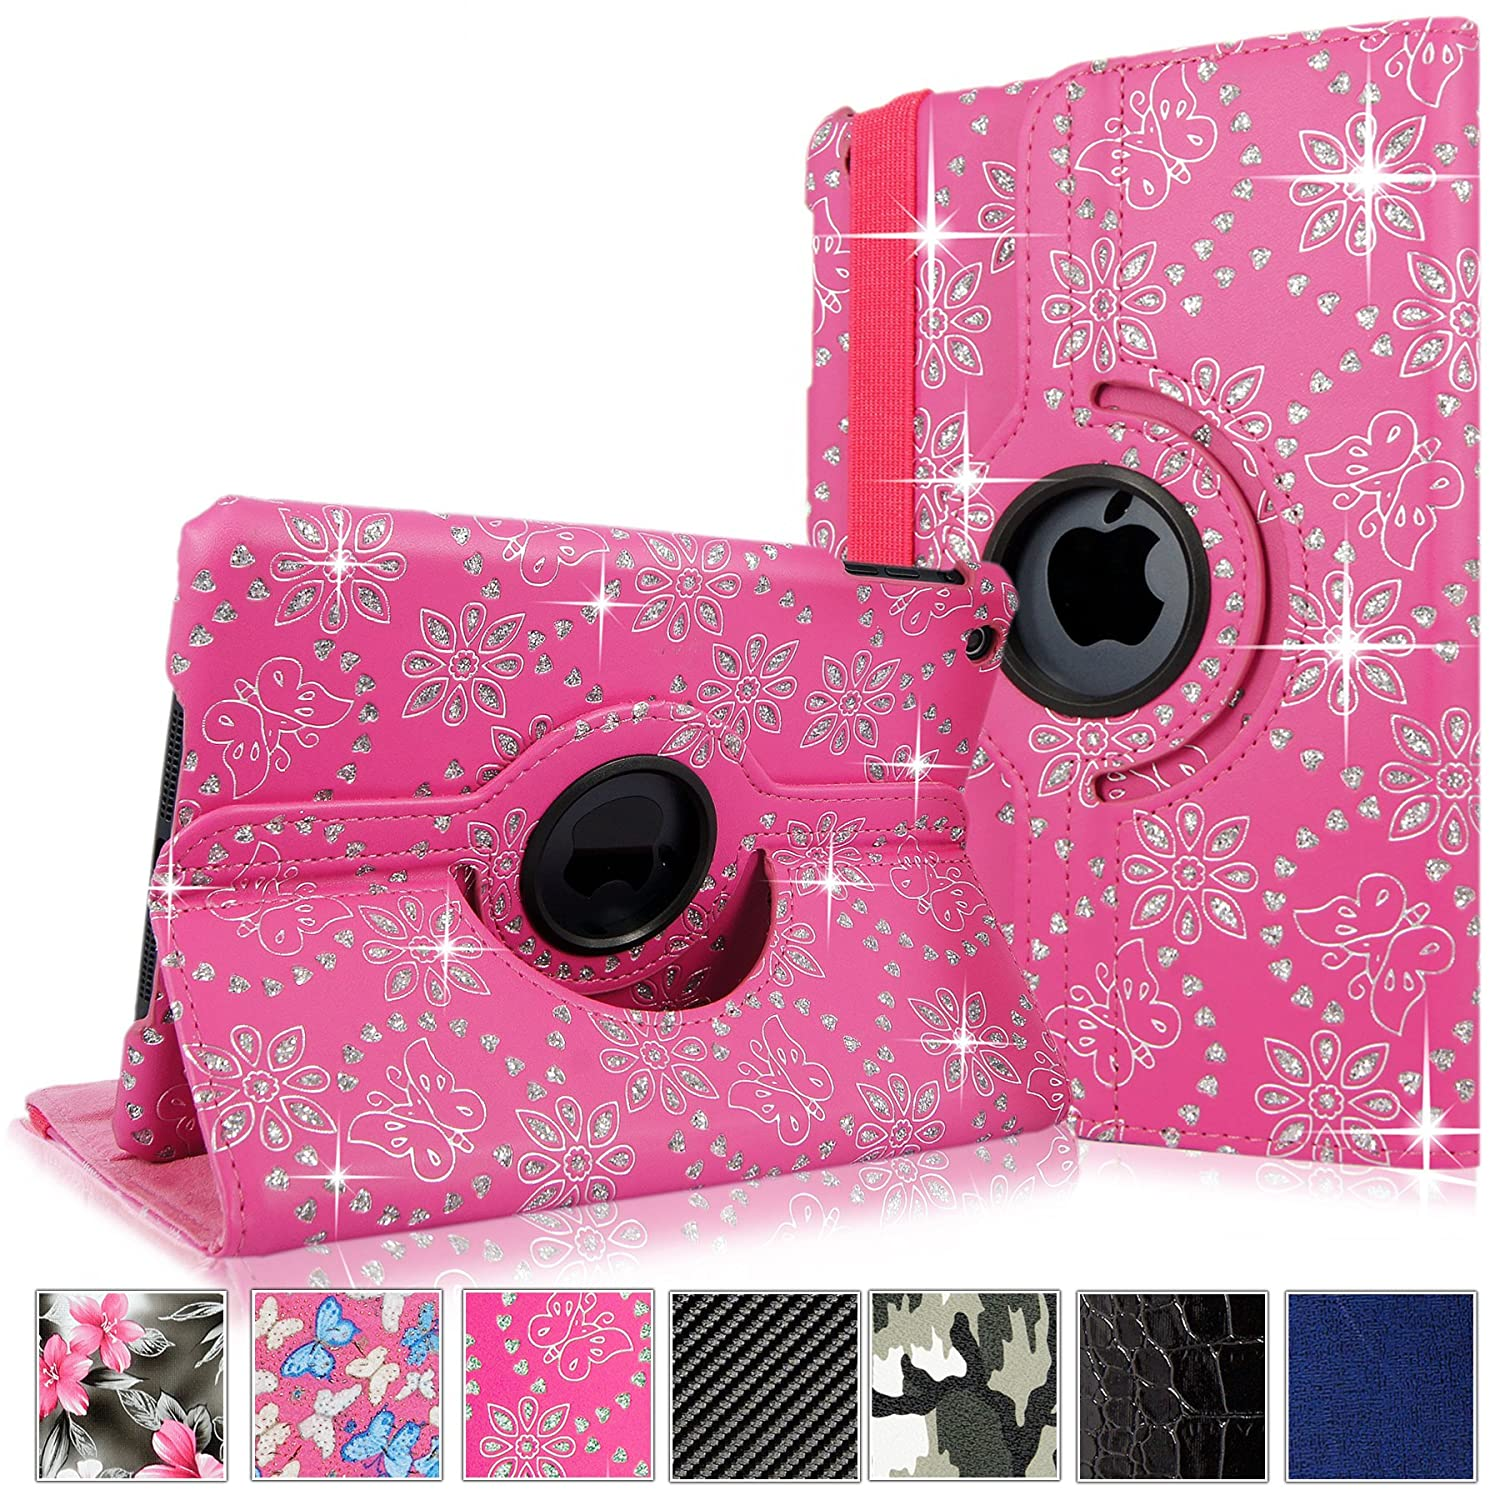 Cellularvilla Display Rotating Glitter Leather Image 1